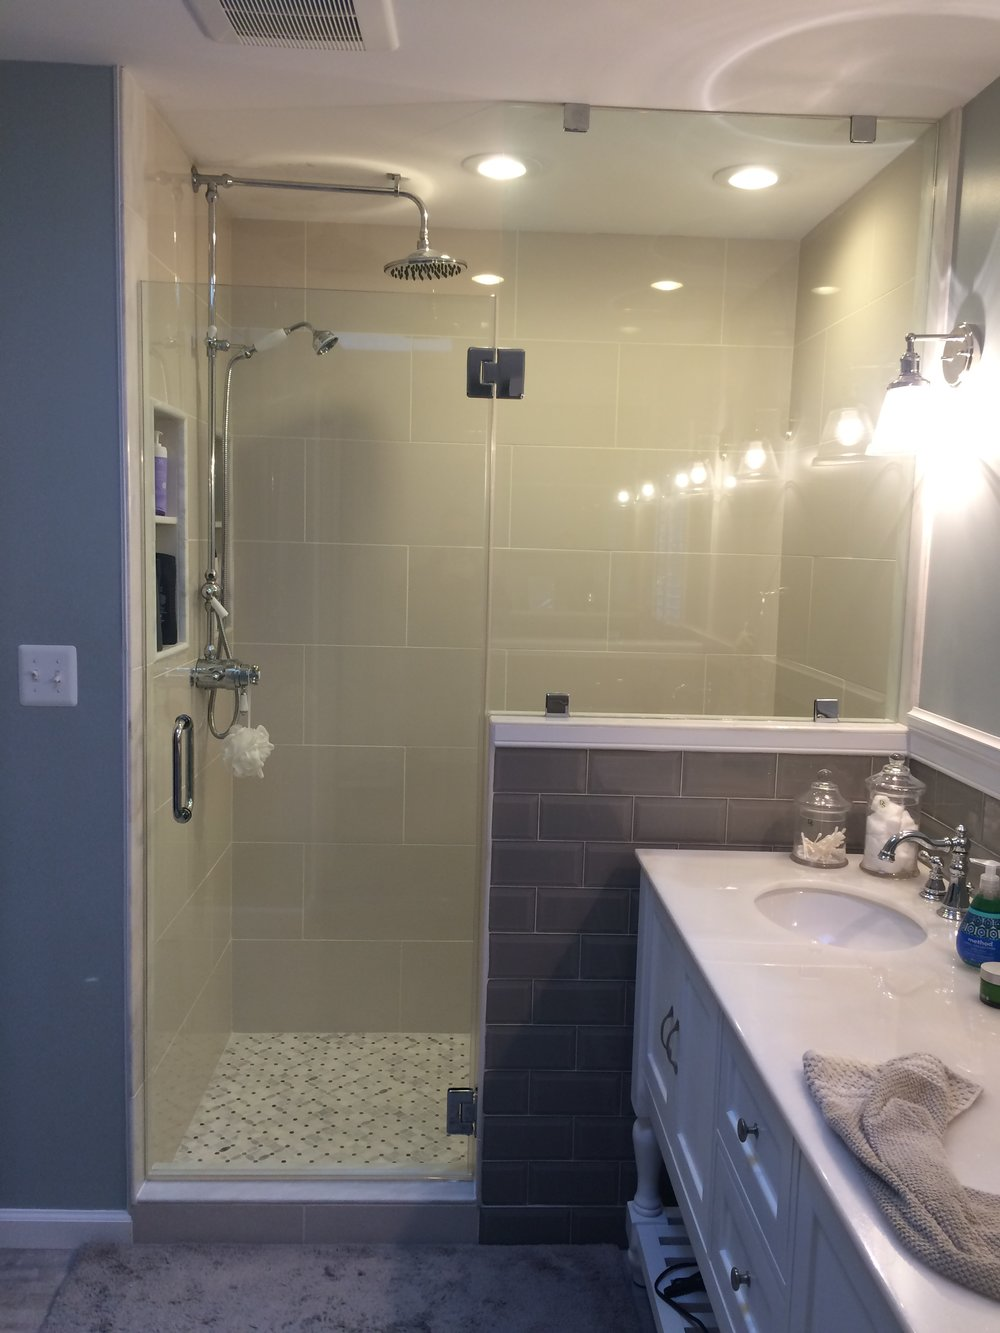 The new shower is enclosed by a custom frame-less glass shower door designed and installed by our friends at Woodbridge Glass Co.